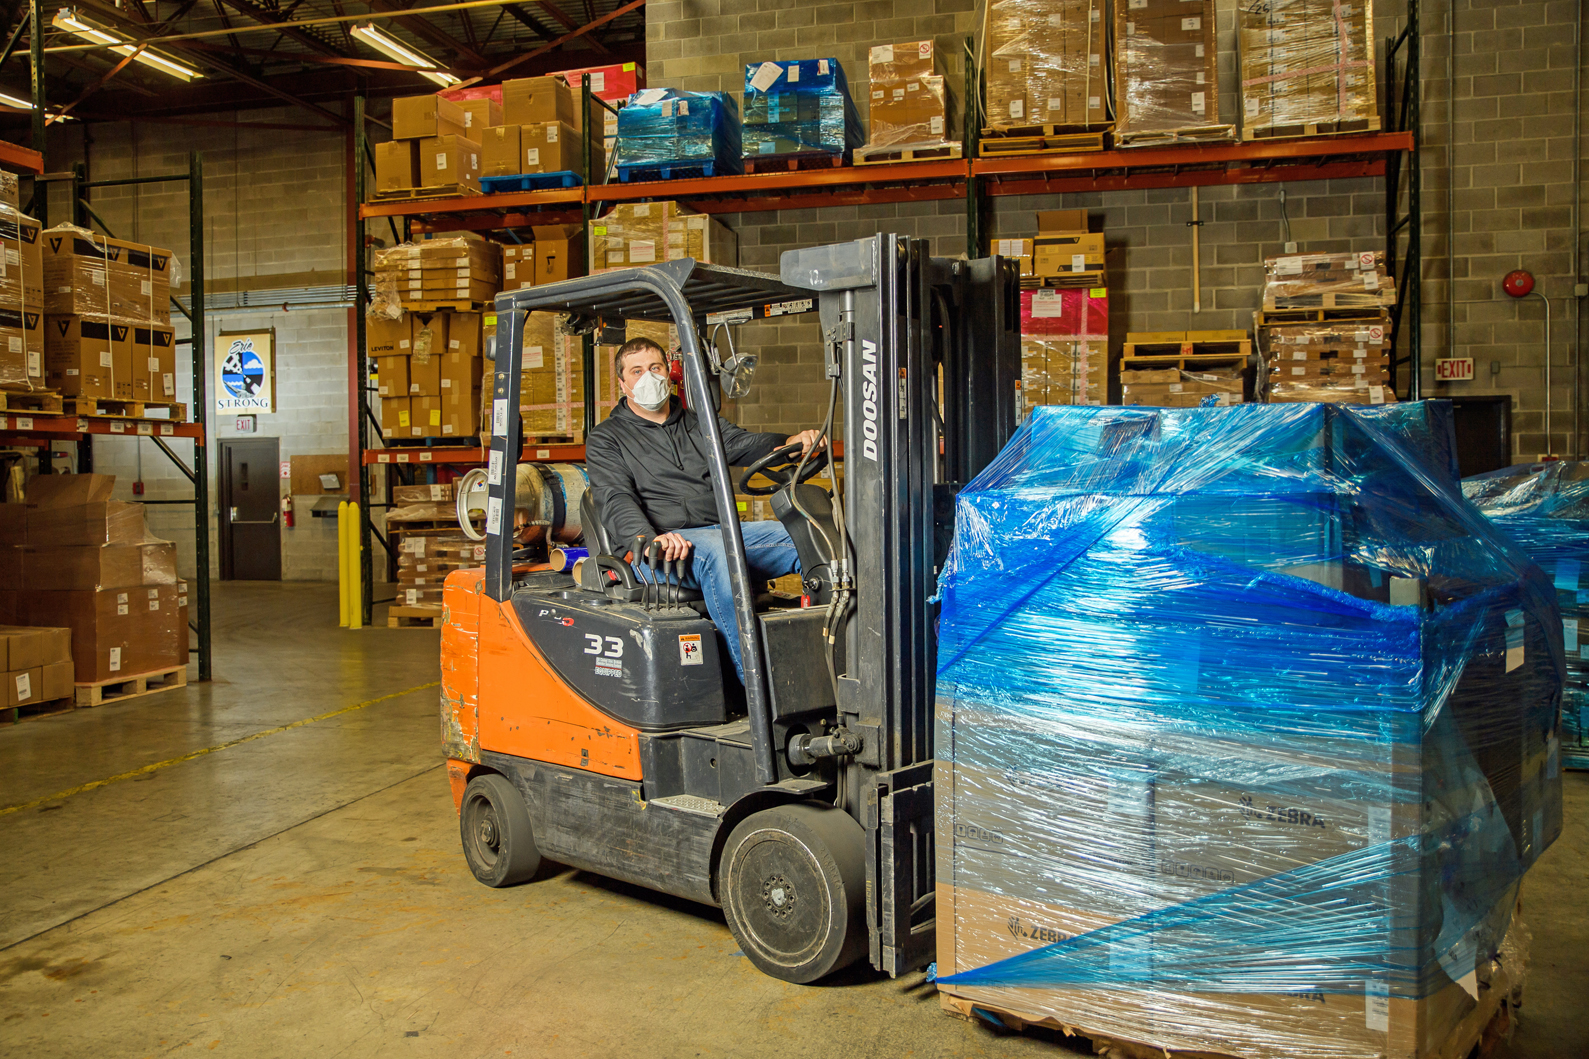 2021 Top 3PL for Warehousing and Fulfillment